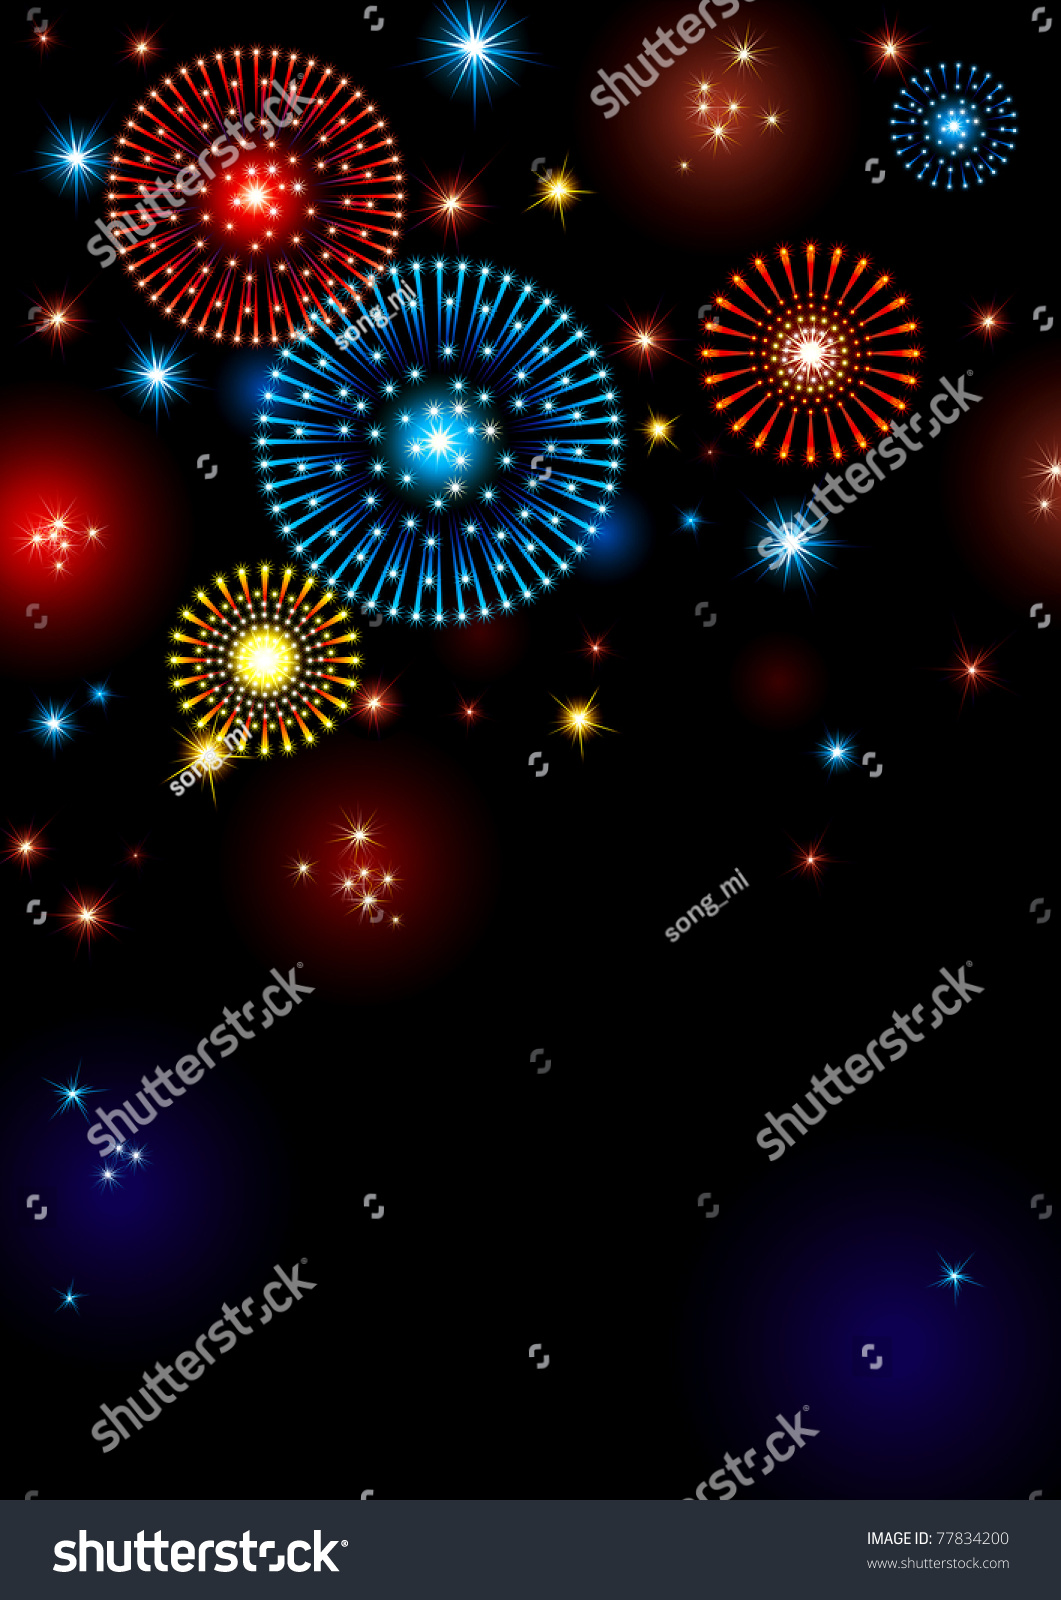 Holiday Fireworks Vertical Vector Background With Many Stars And On Night Dark Sky